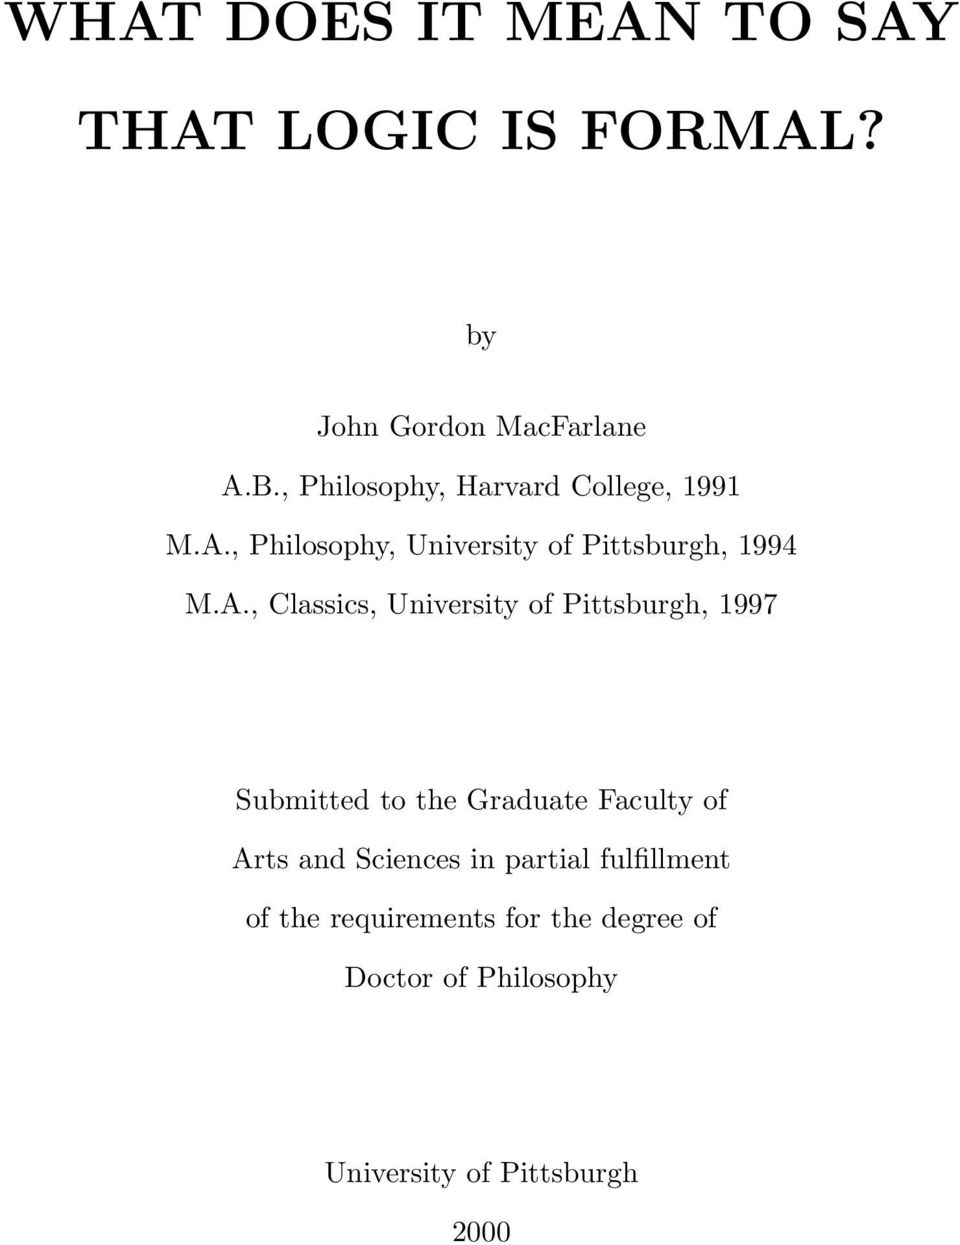 , Philosophy, University of Pittsburgh, 1994 M.A.